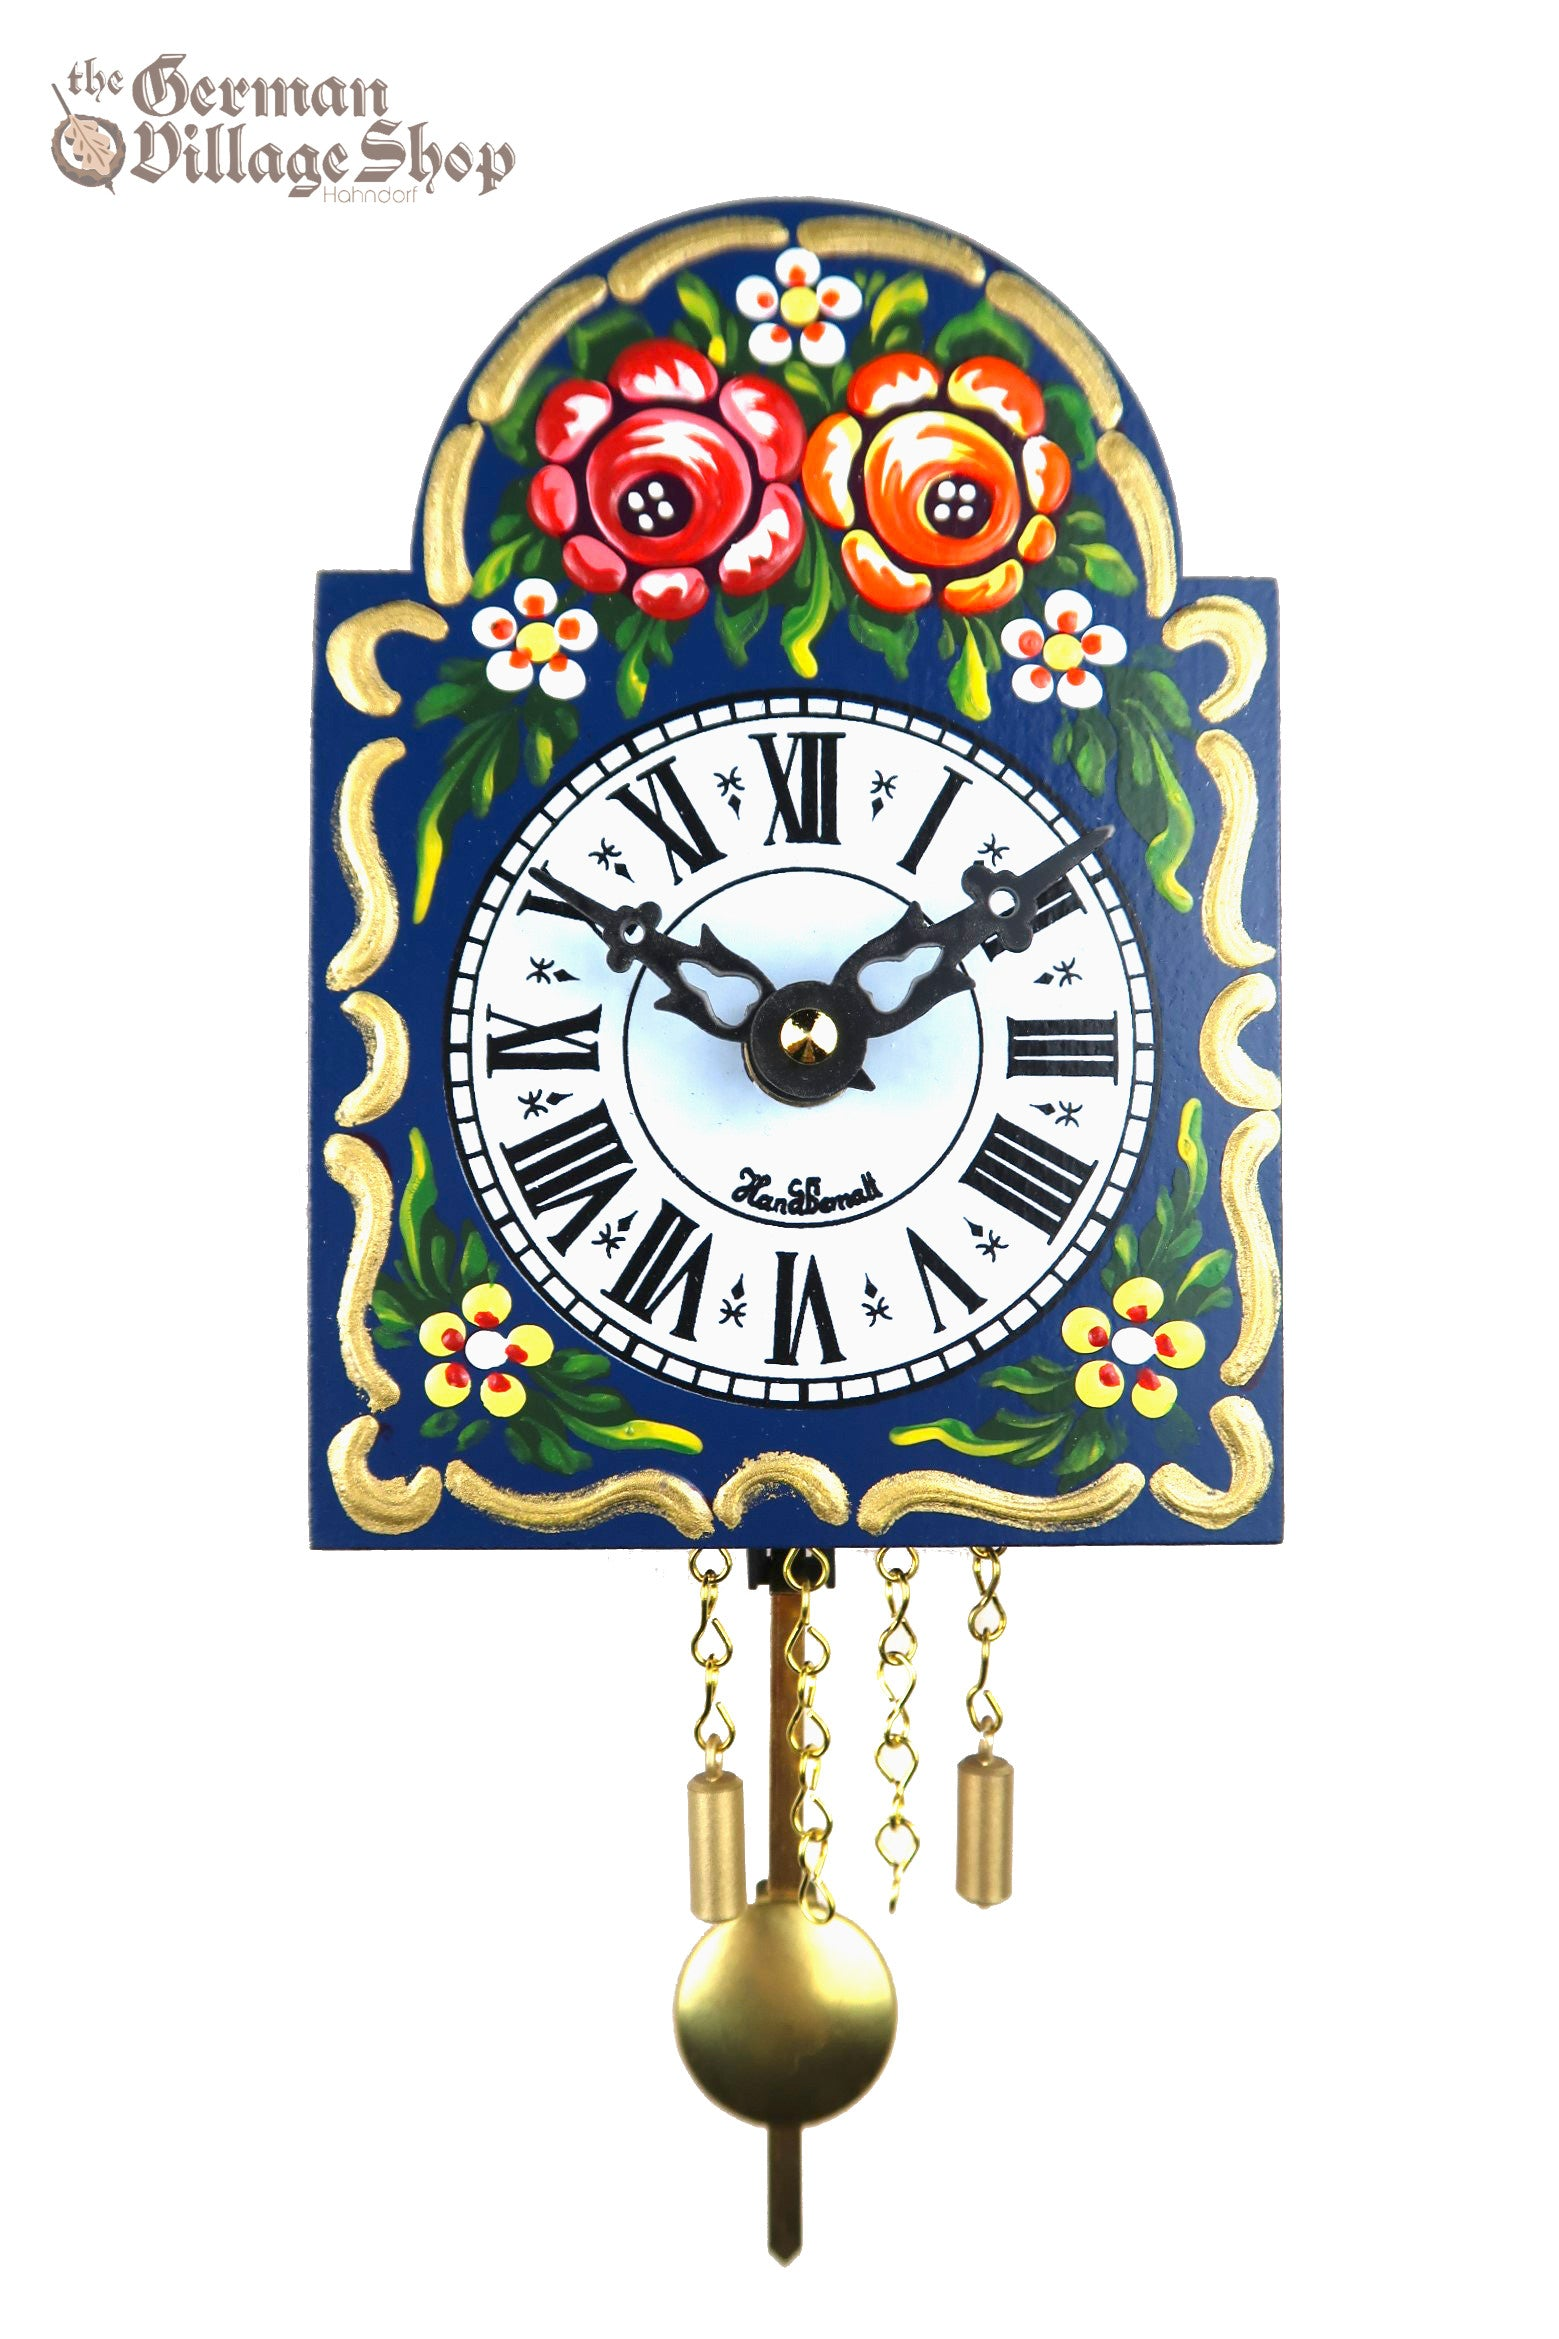 Kuckoolino Cuckoo Clock shield clock design